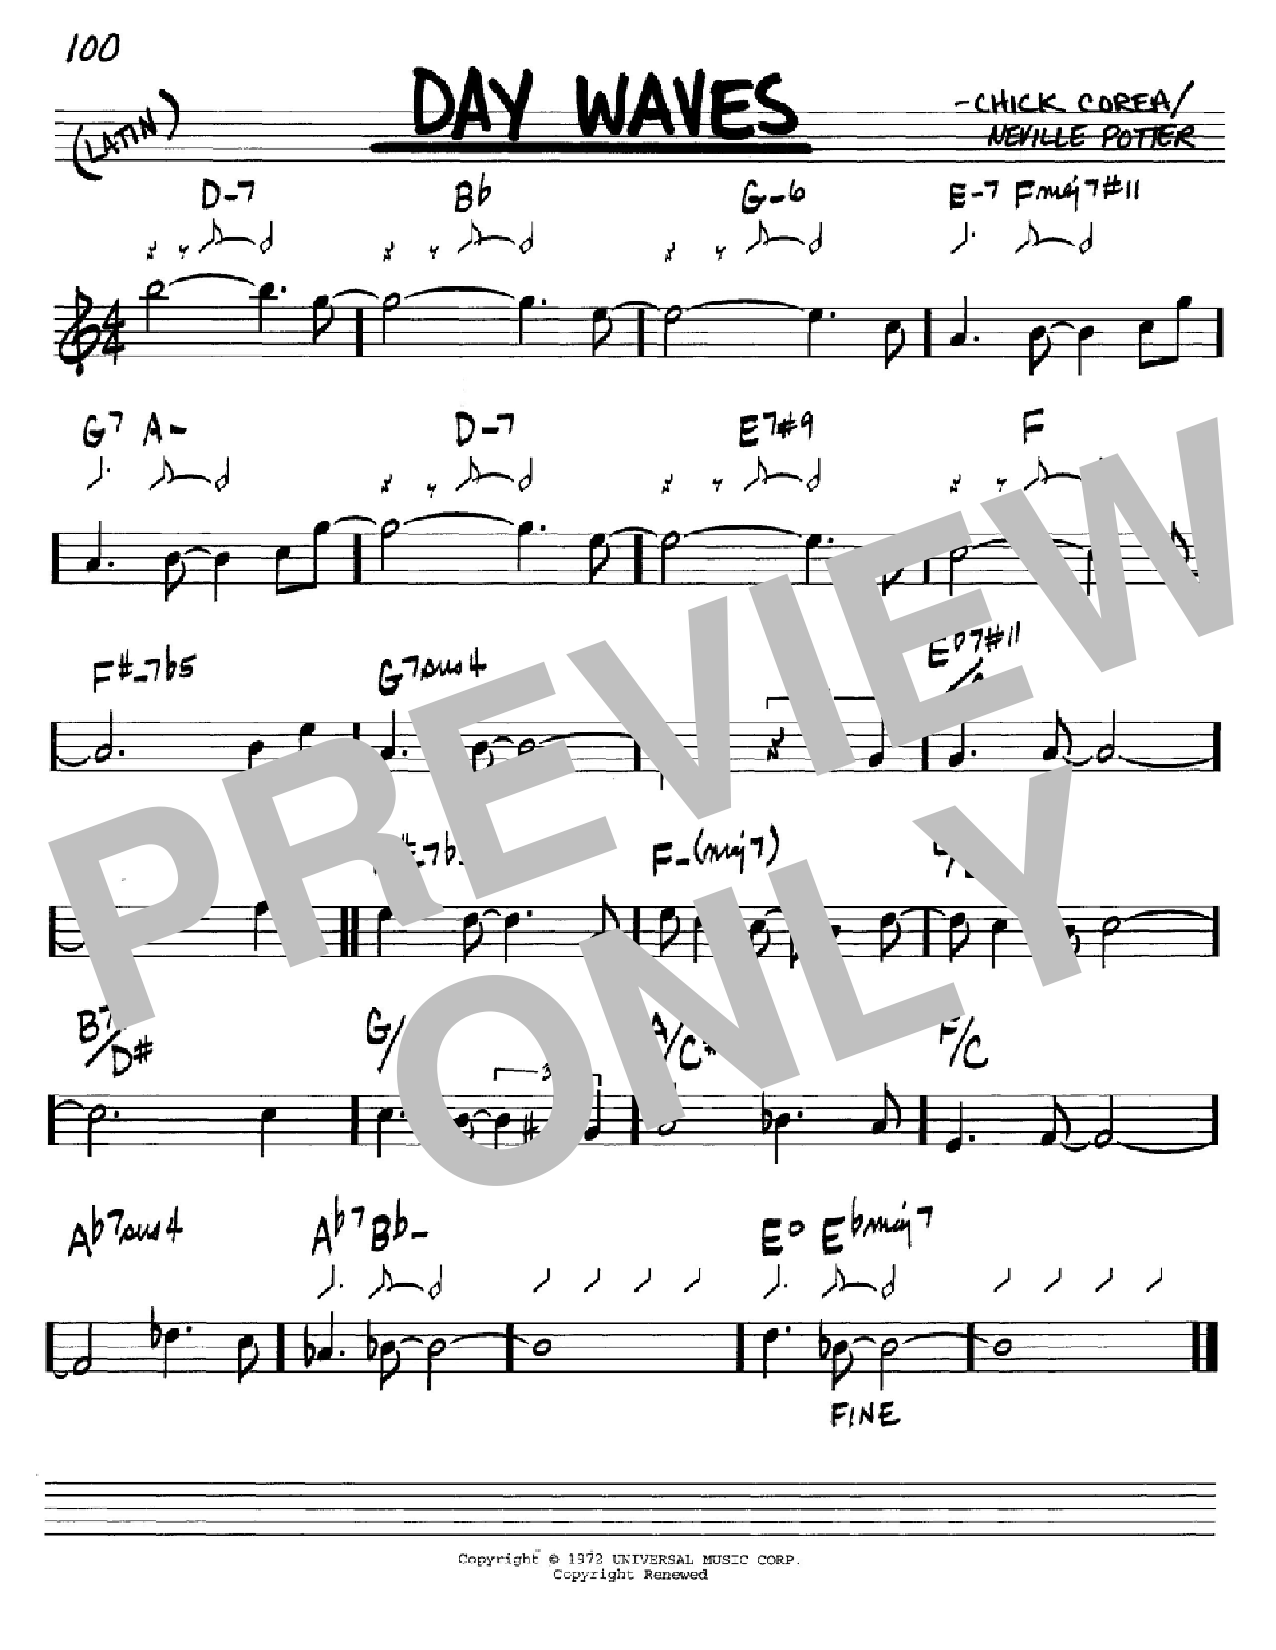 Day Waves Sheet Music